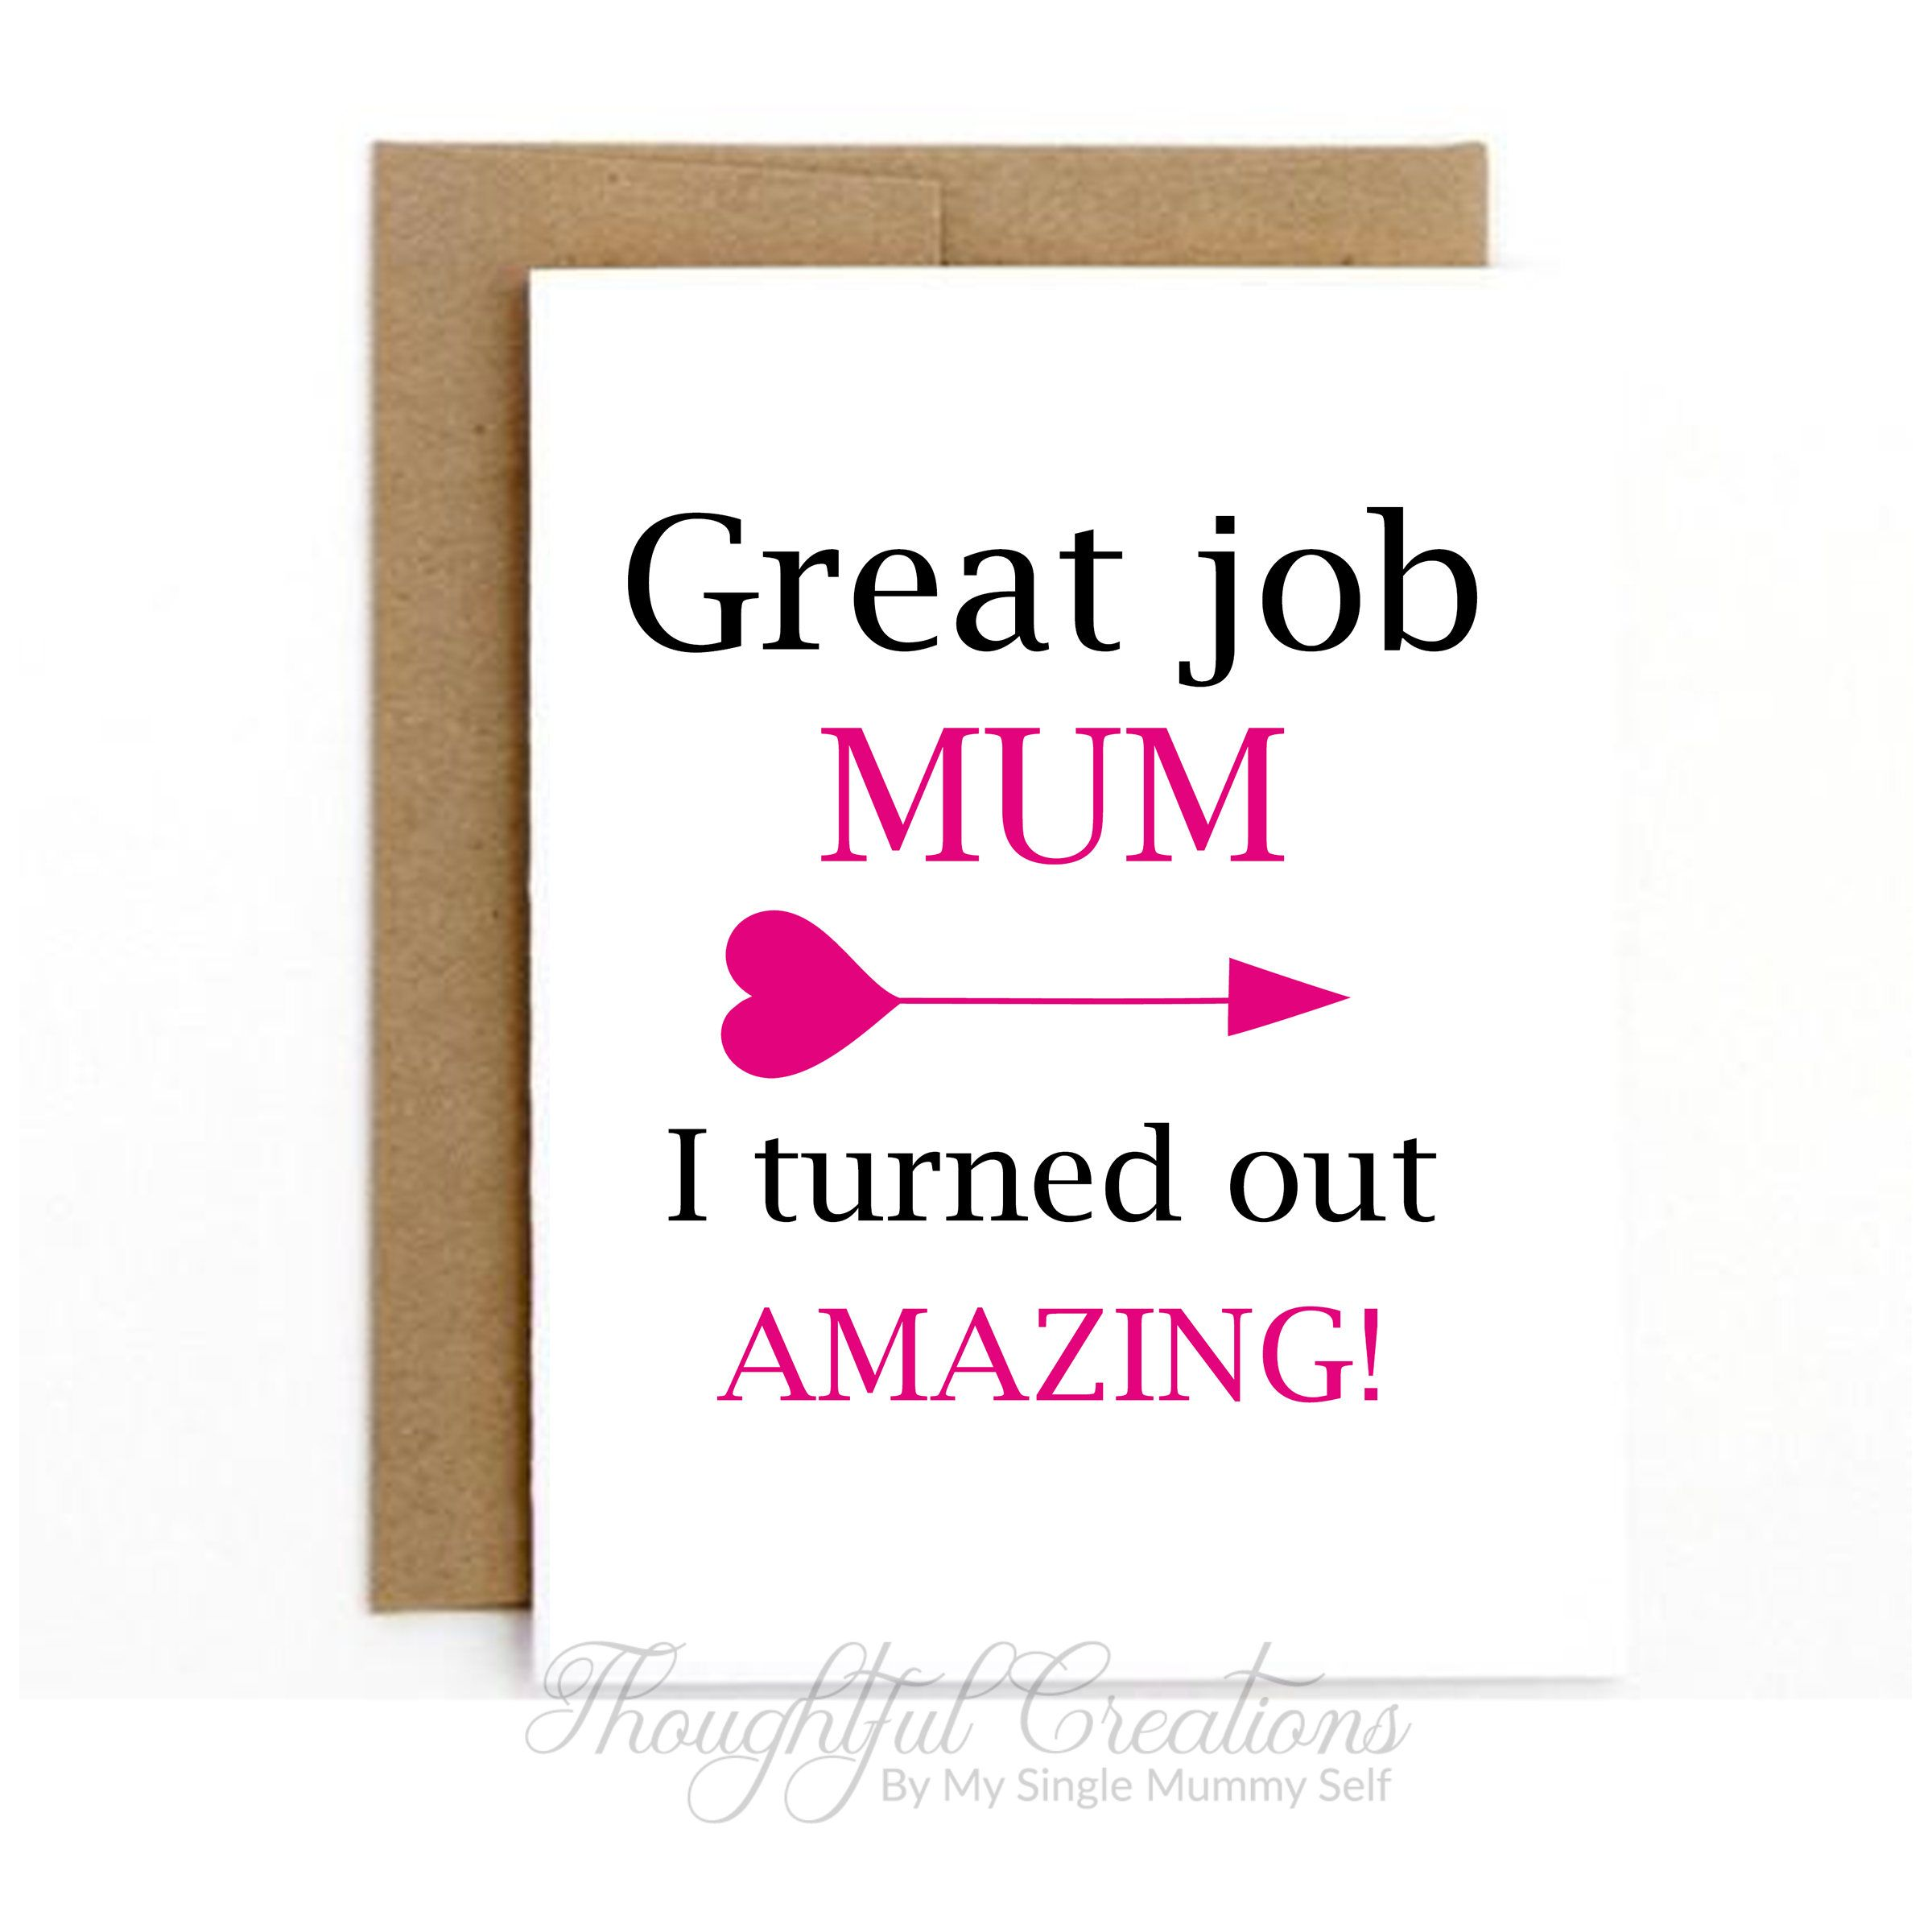 Funny Mothers Day Card Card For Mum Mother S Day Card Happy Mothers Day Mothering Sunday Card Mothering Sunday Mothers Day Card Template Funny Mothers Day